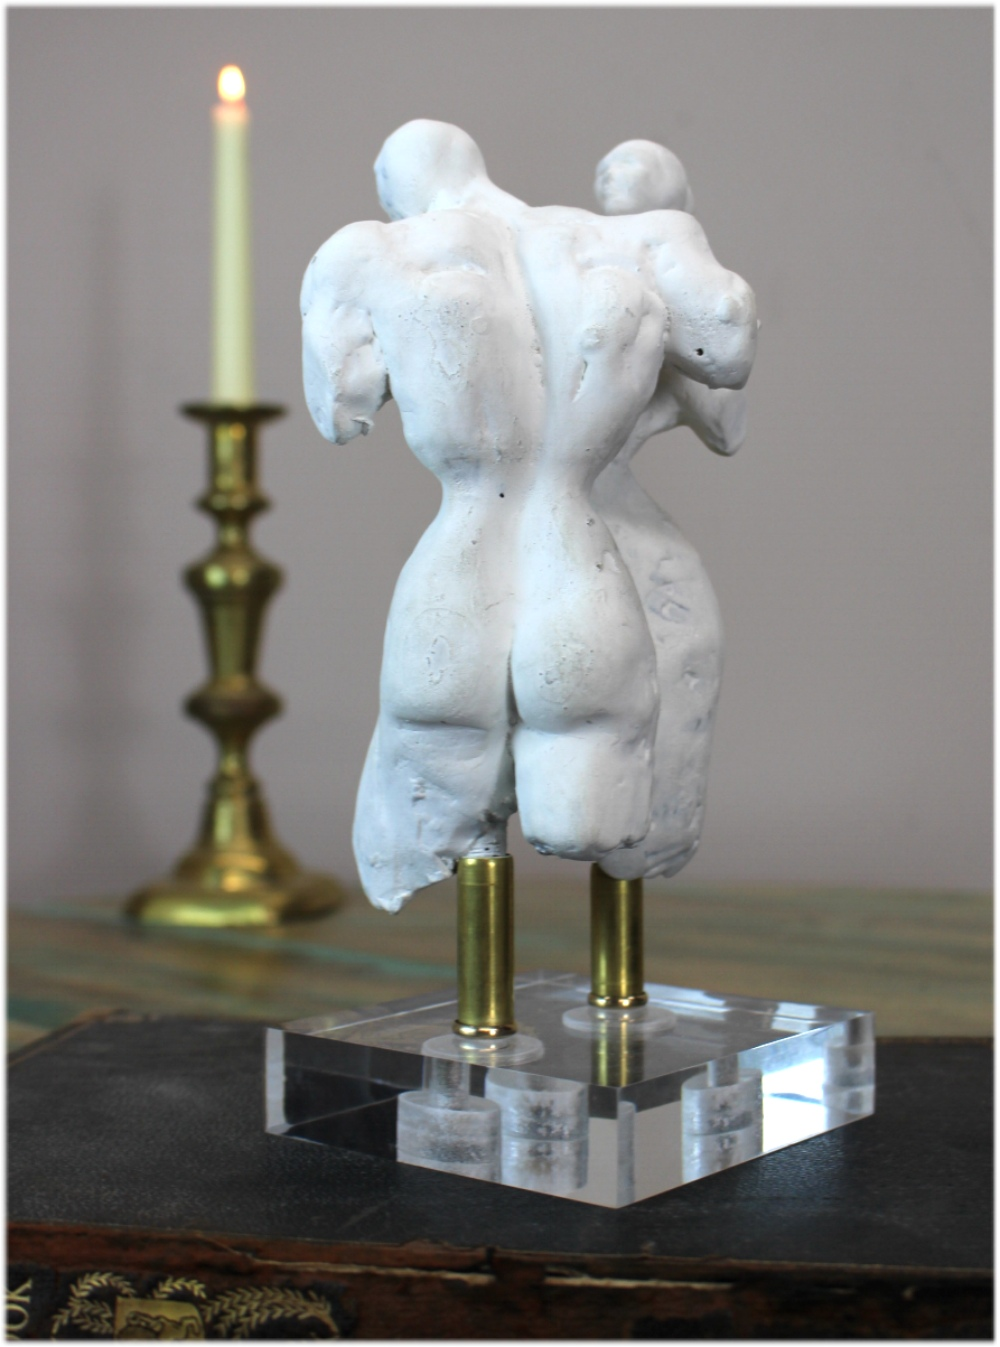 Lovers Lucite Sculpture with Nude Male and Female Figures on Acrylic Base lk Hart Haziza